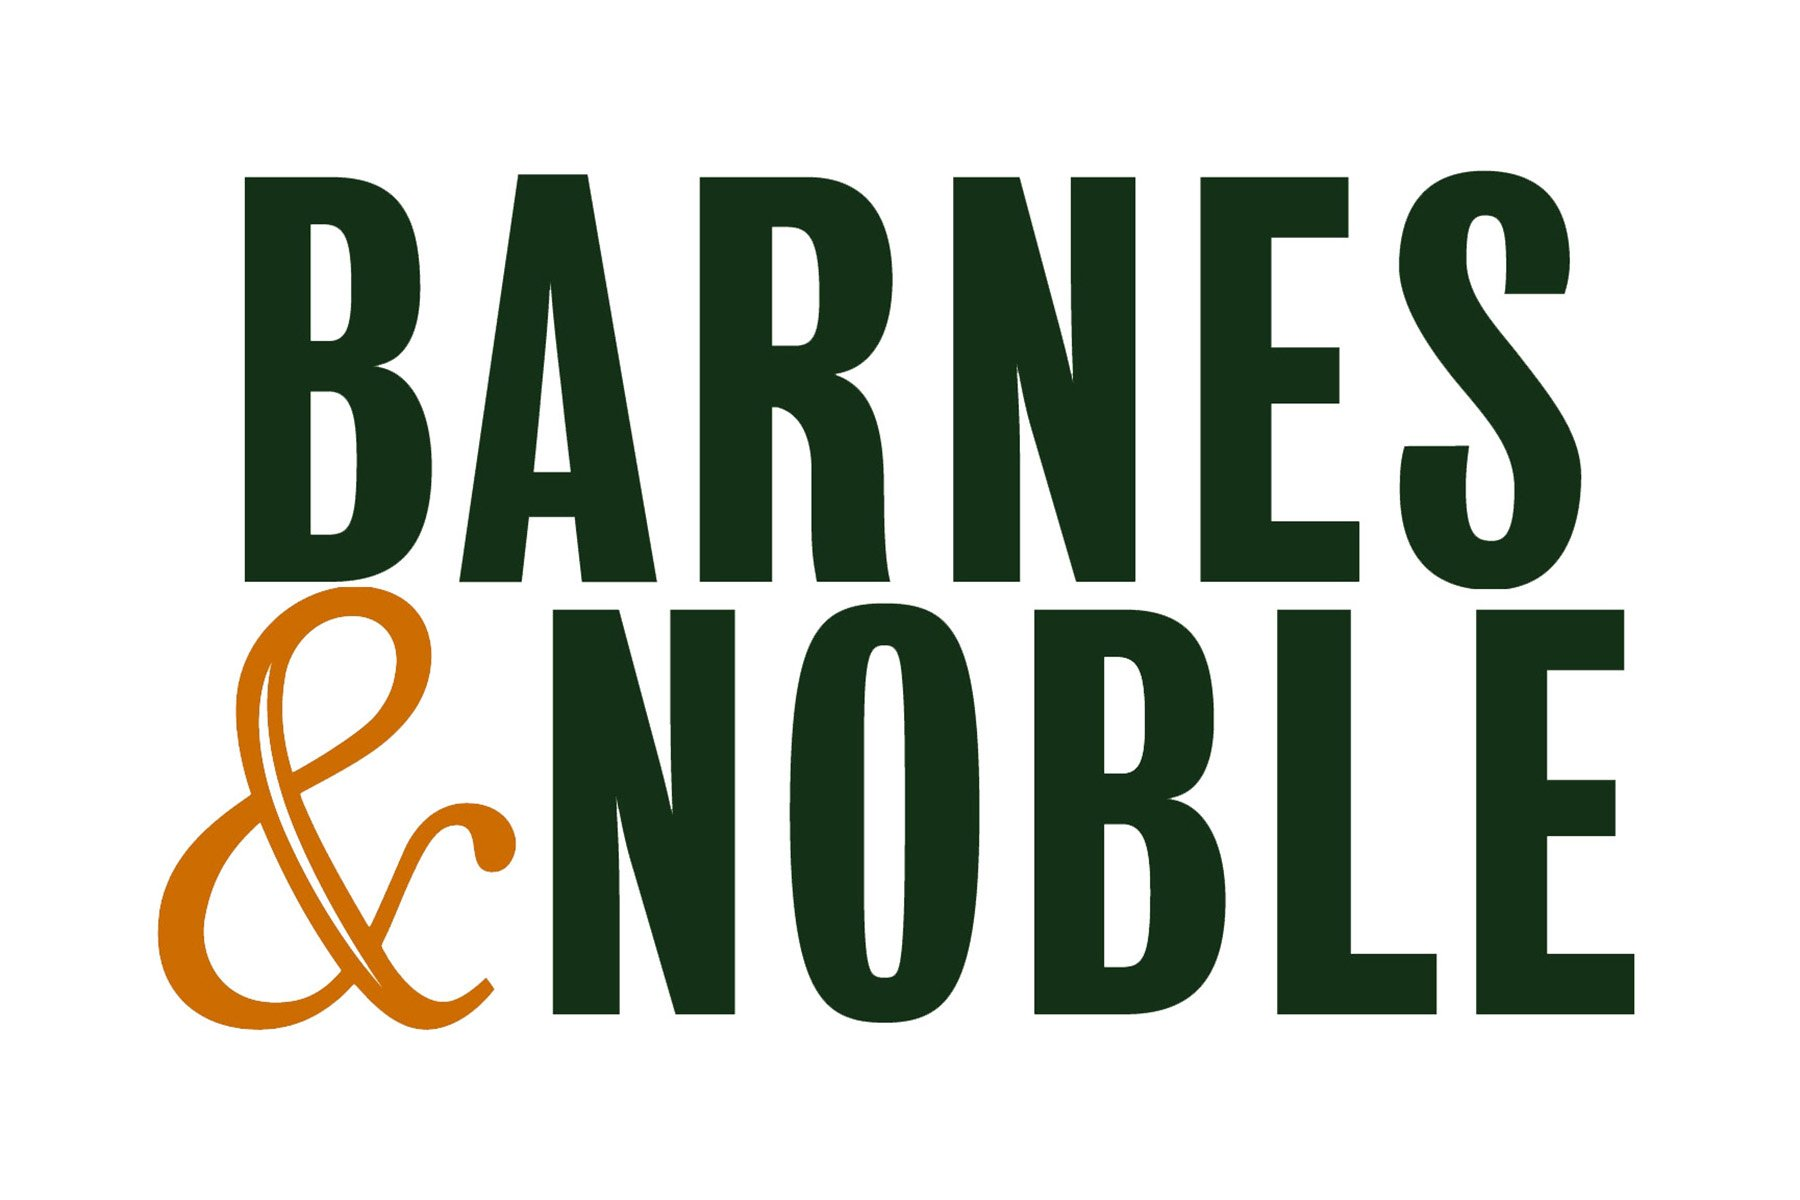 https://0201.nccdn.net/4_2/000/000/048/0a6/barnes-and-noble-logo-1800x1200.jpg